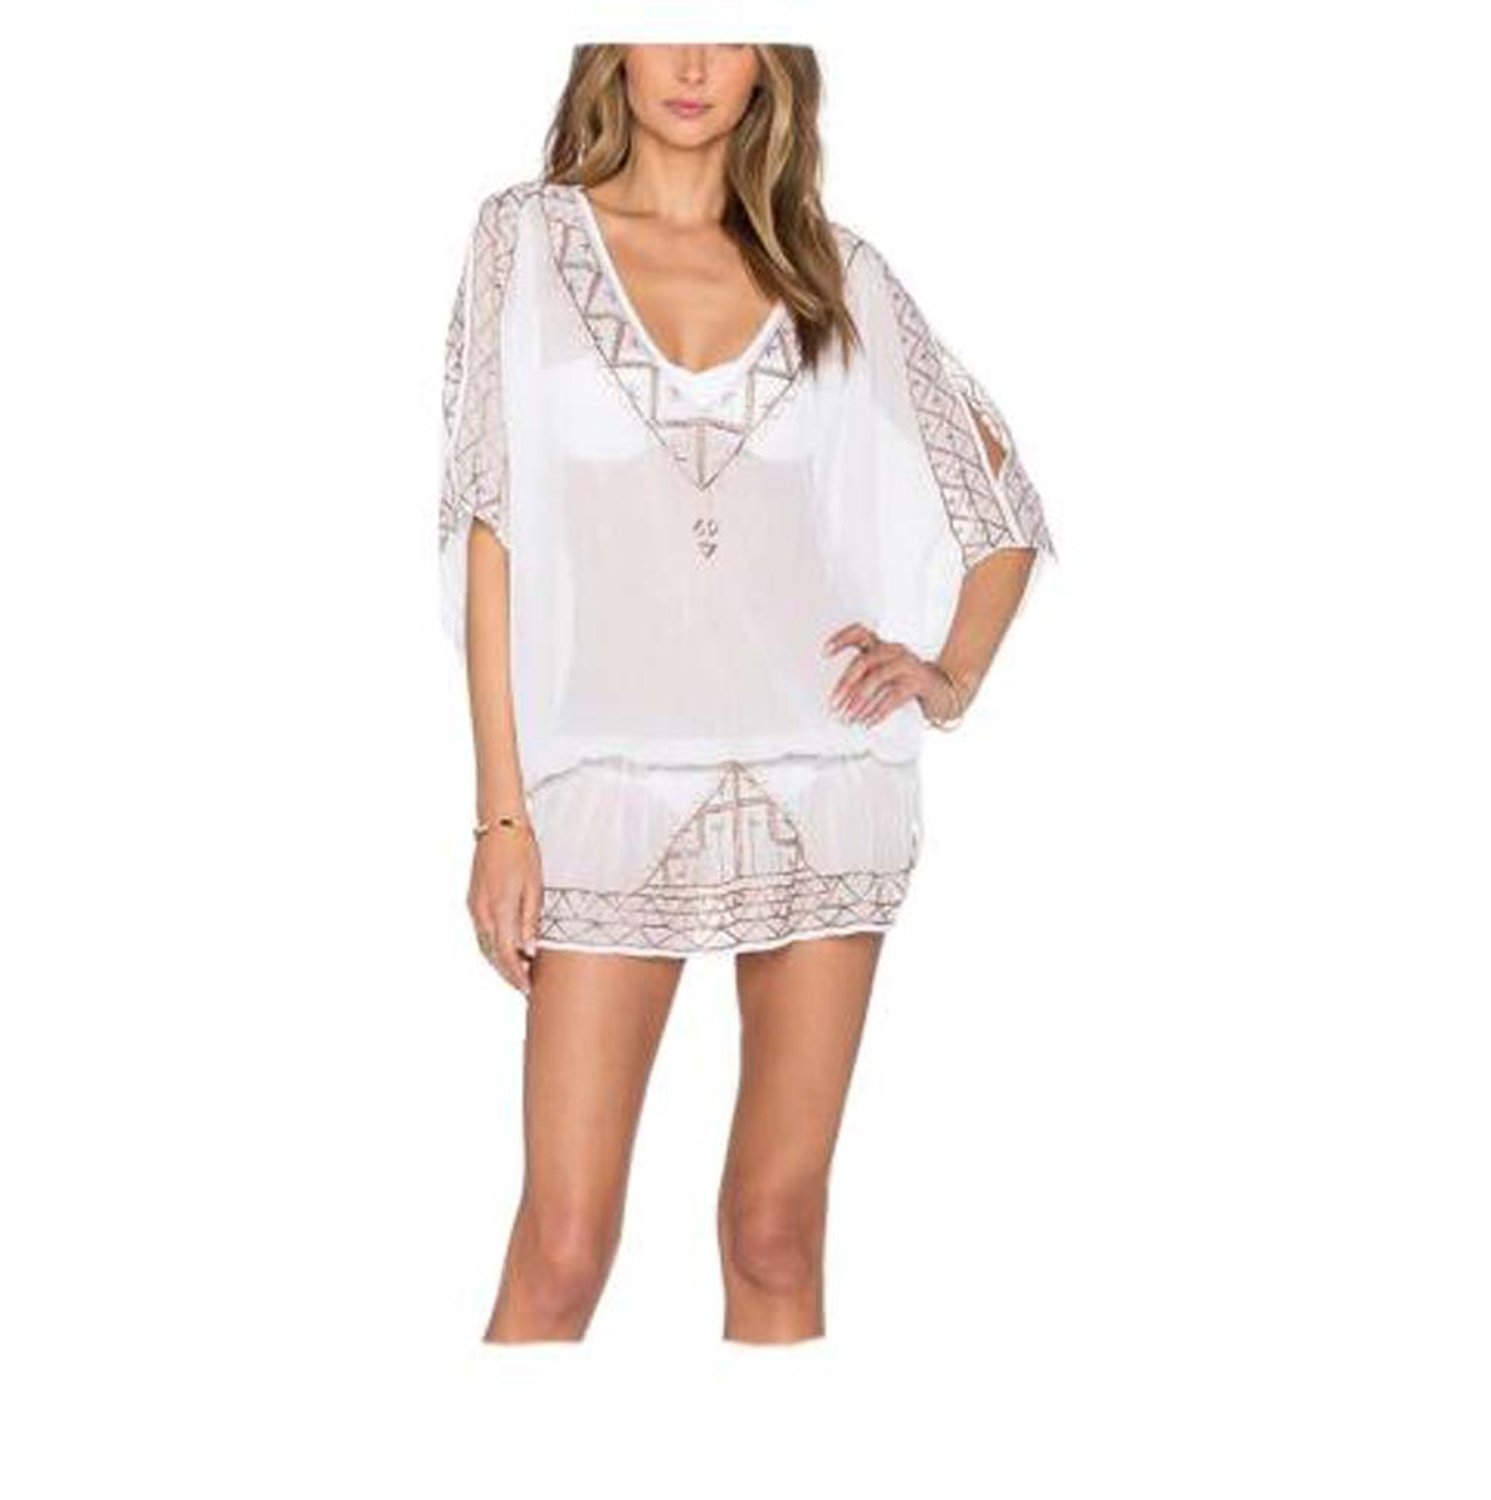 896a35cfdde30 Cheap White Transparent Swimsuit, find White Transparent Swimsuit ...